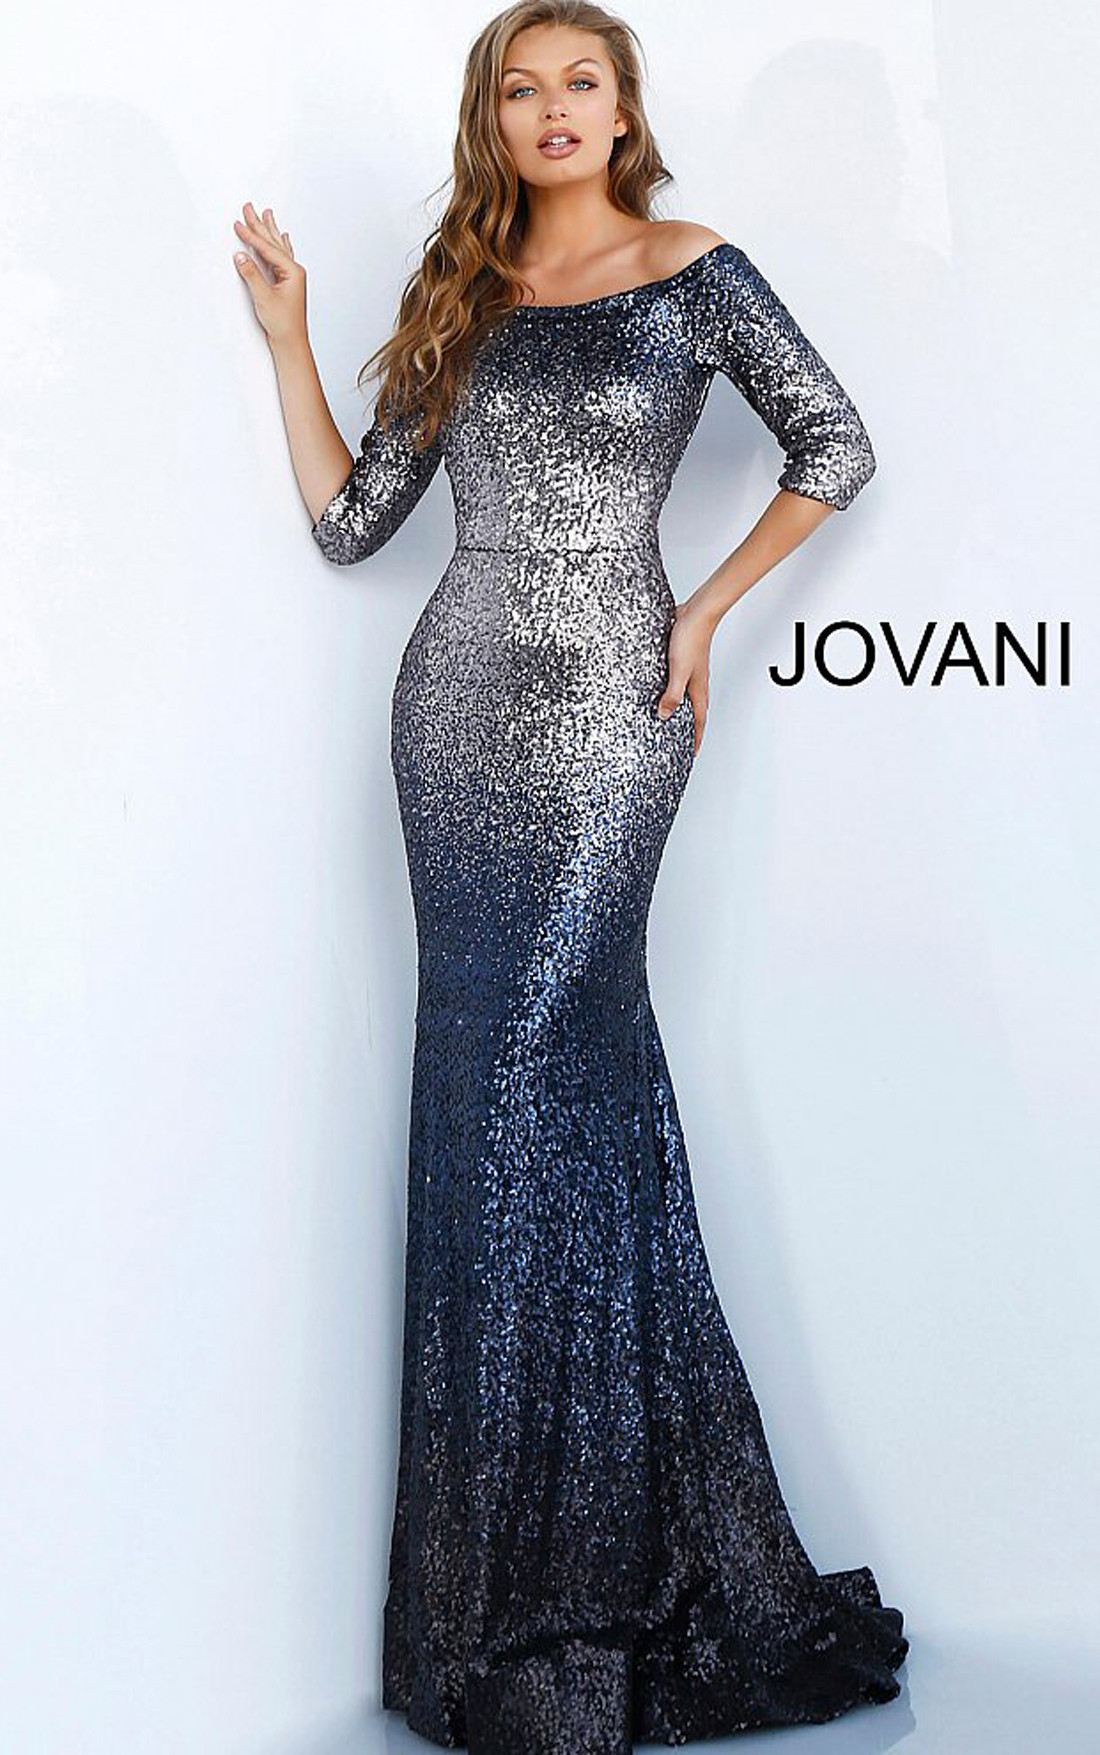 Jovani - Charcoal Sequinned Embellished Three Quarter Sleeve Dress (63707)